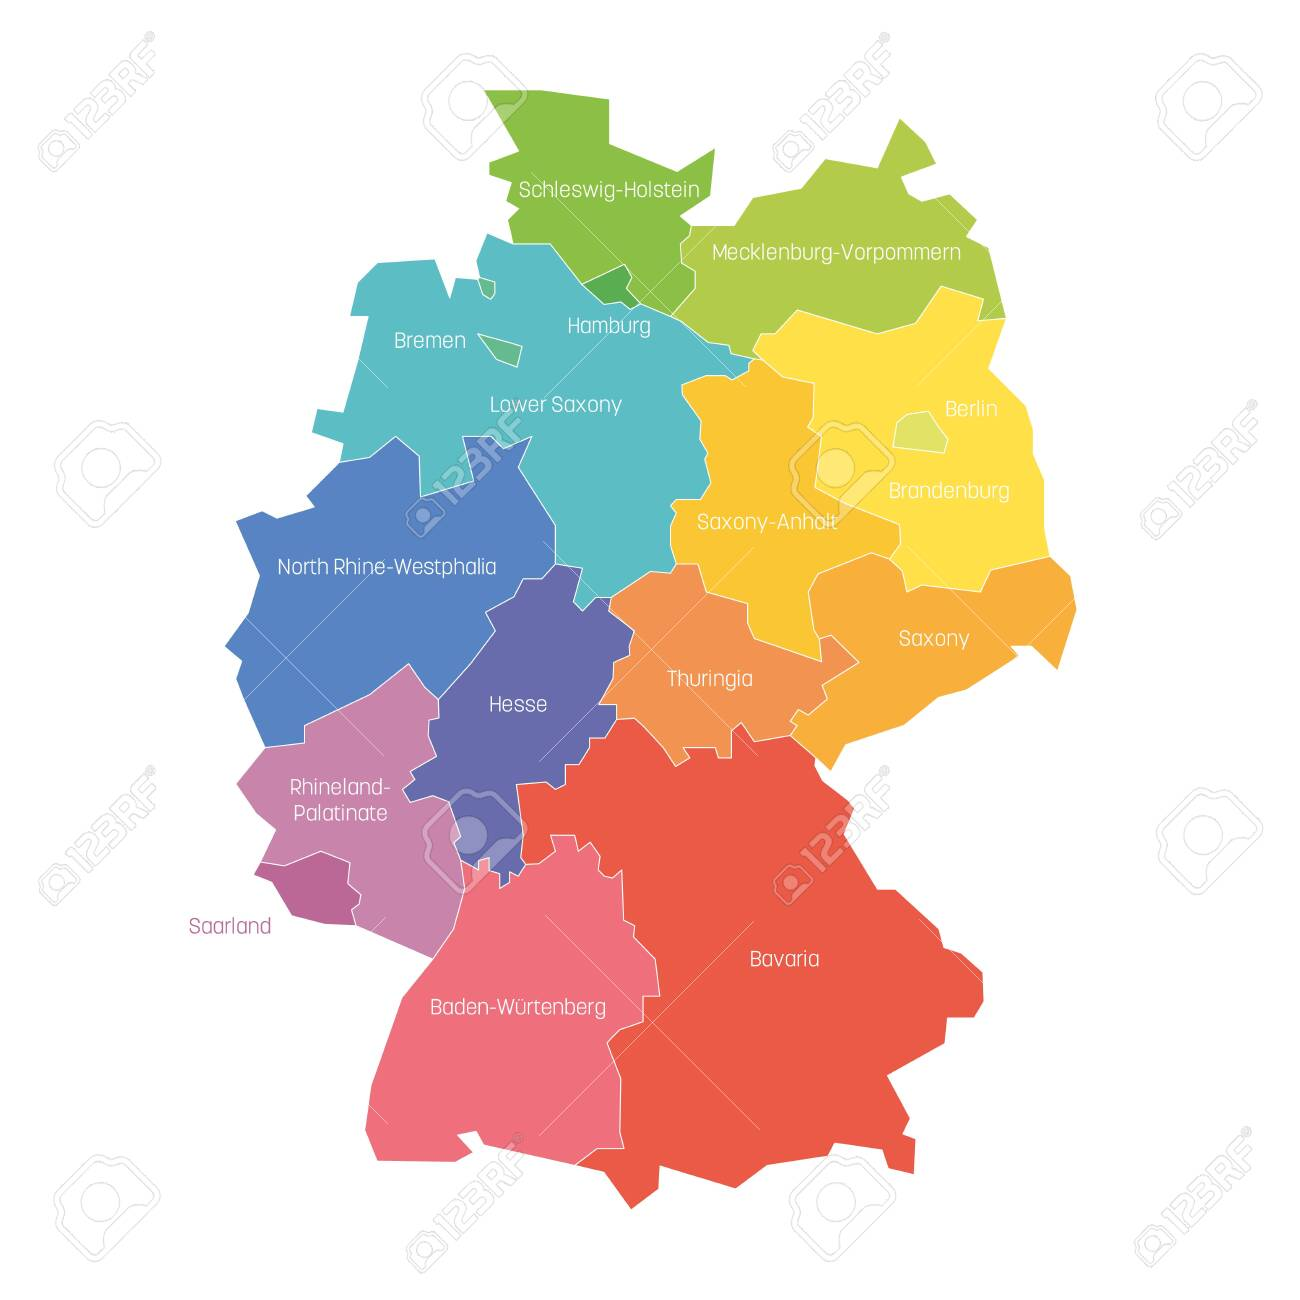 States Of Germany Map Of Regional Country Administrative Divisions Royalty Free Cliparts Vectors And Stock Illustration Image 123248215